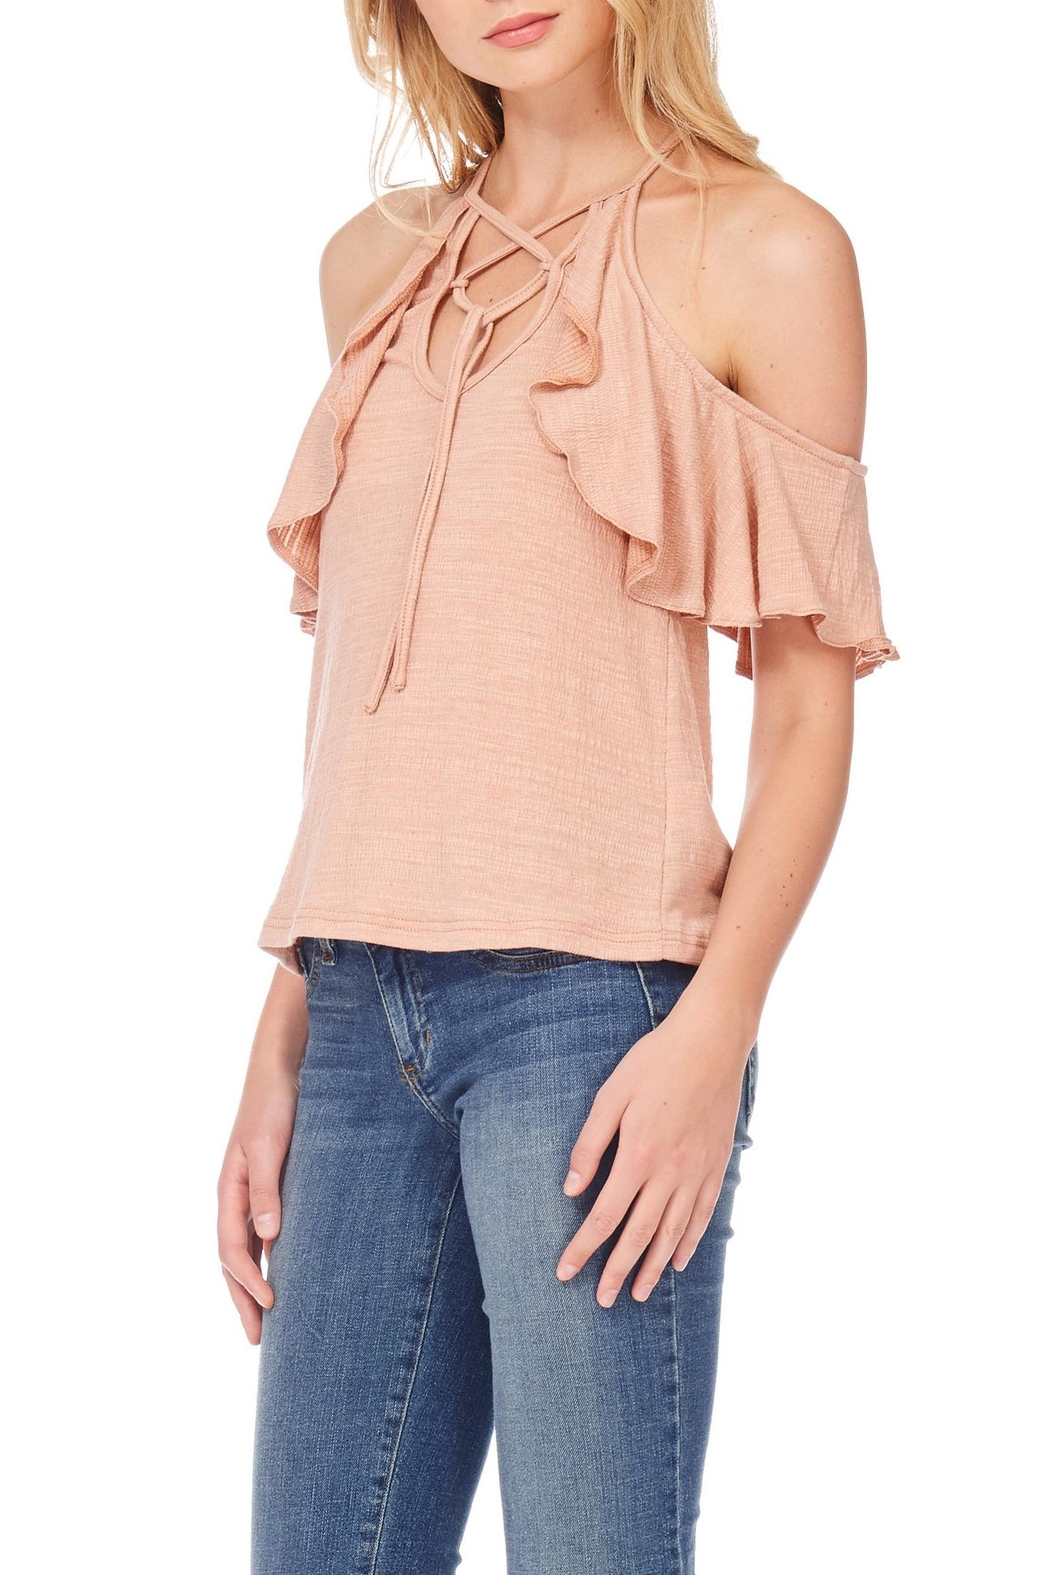 Anama Lace-Up Cold-Shoulder Blouse - Front Full Image